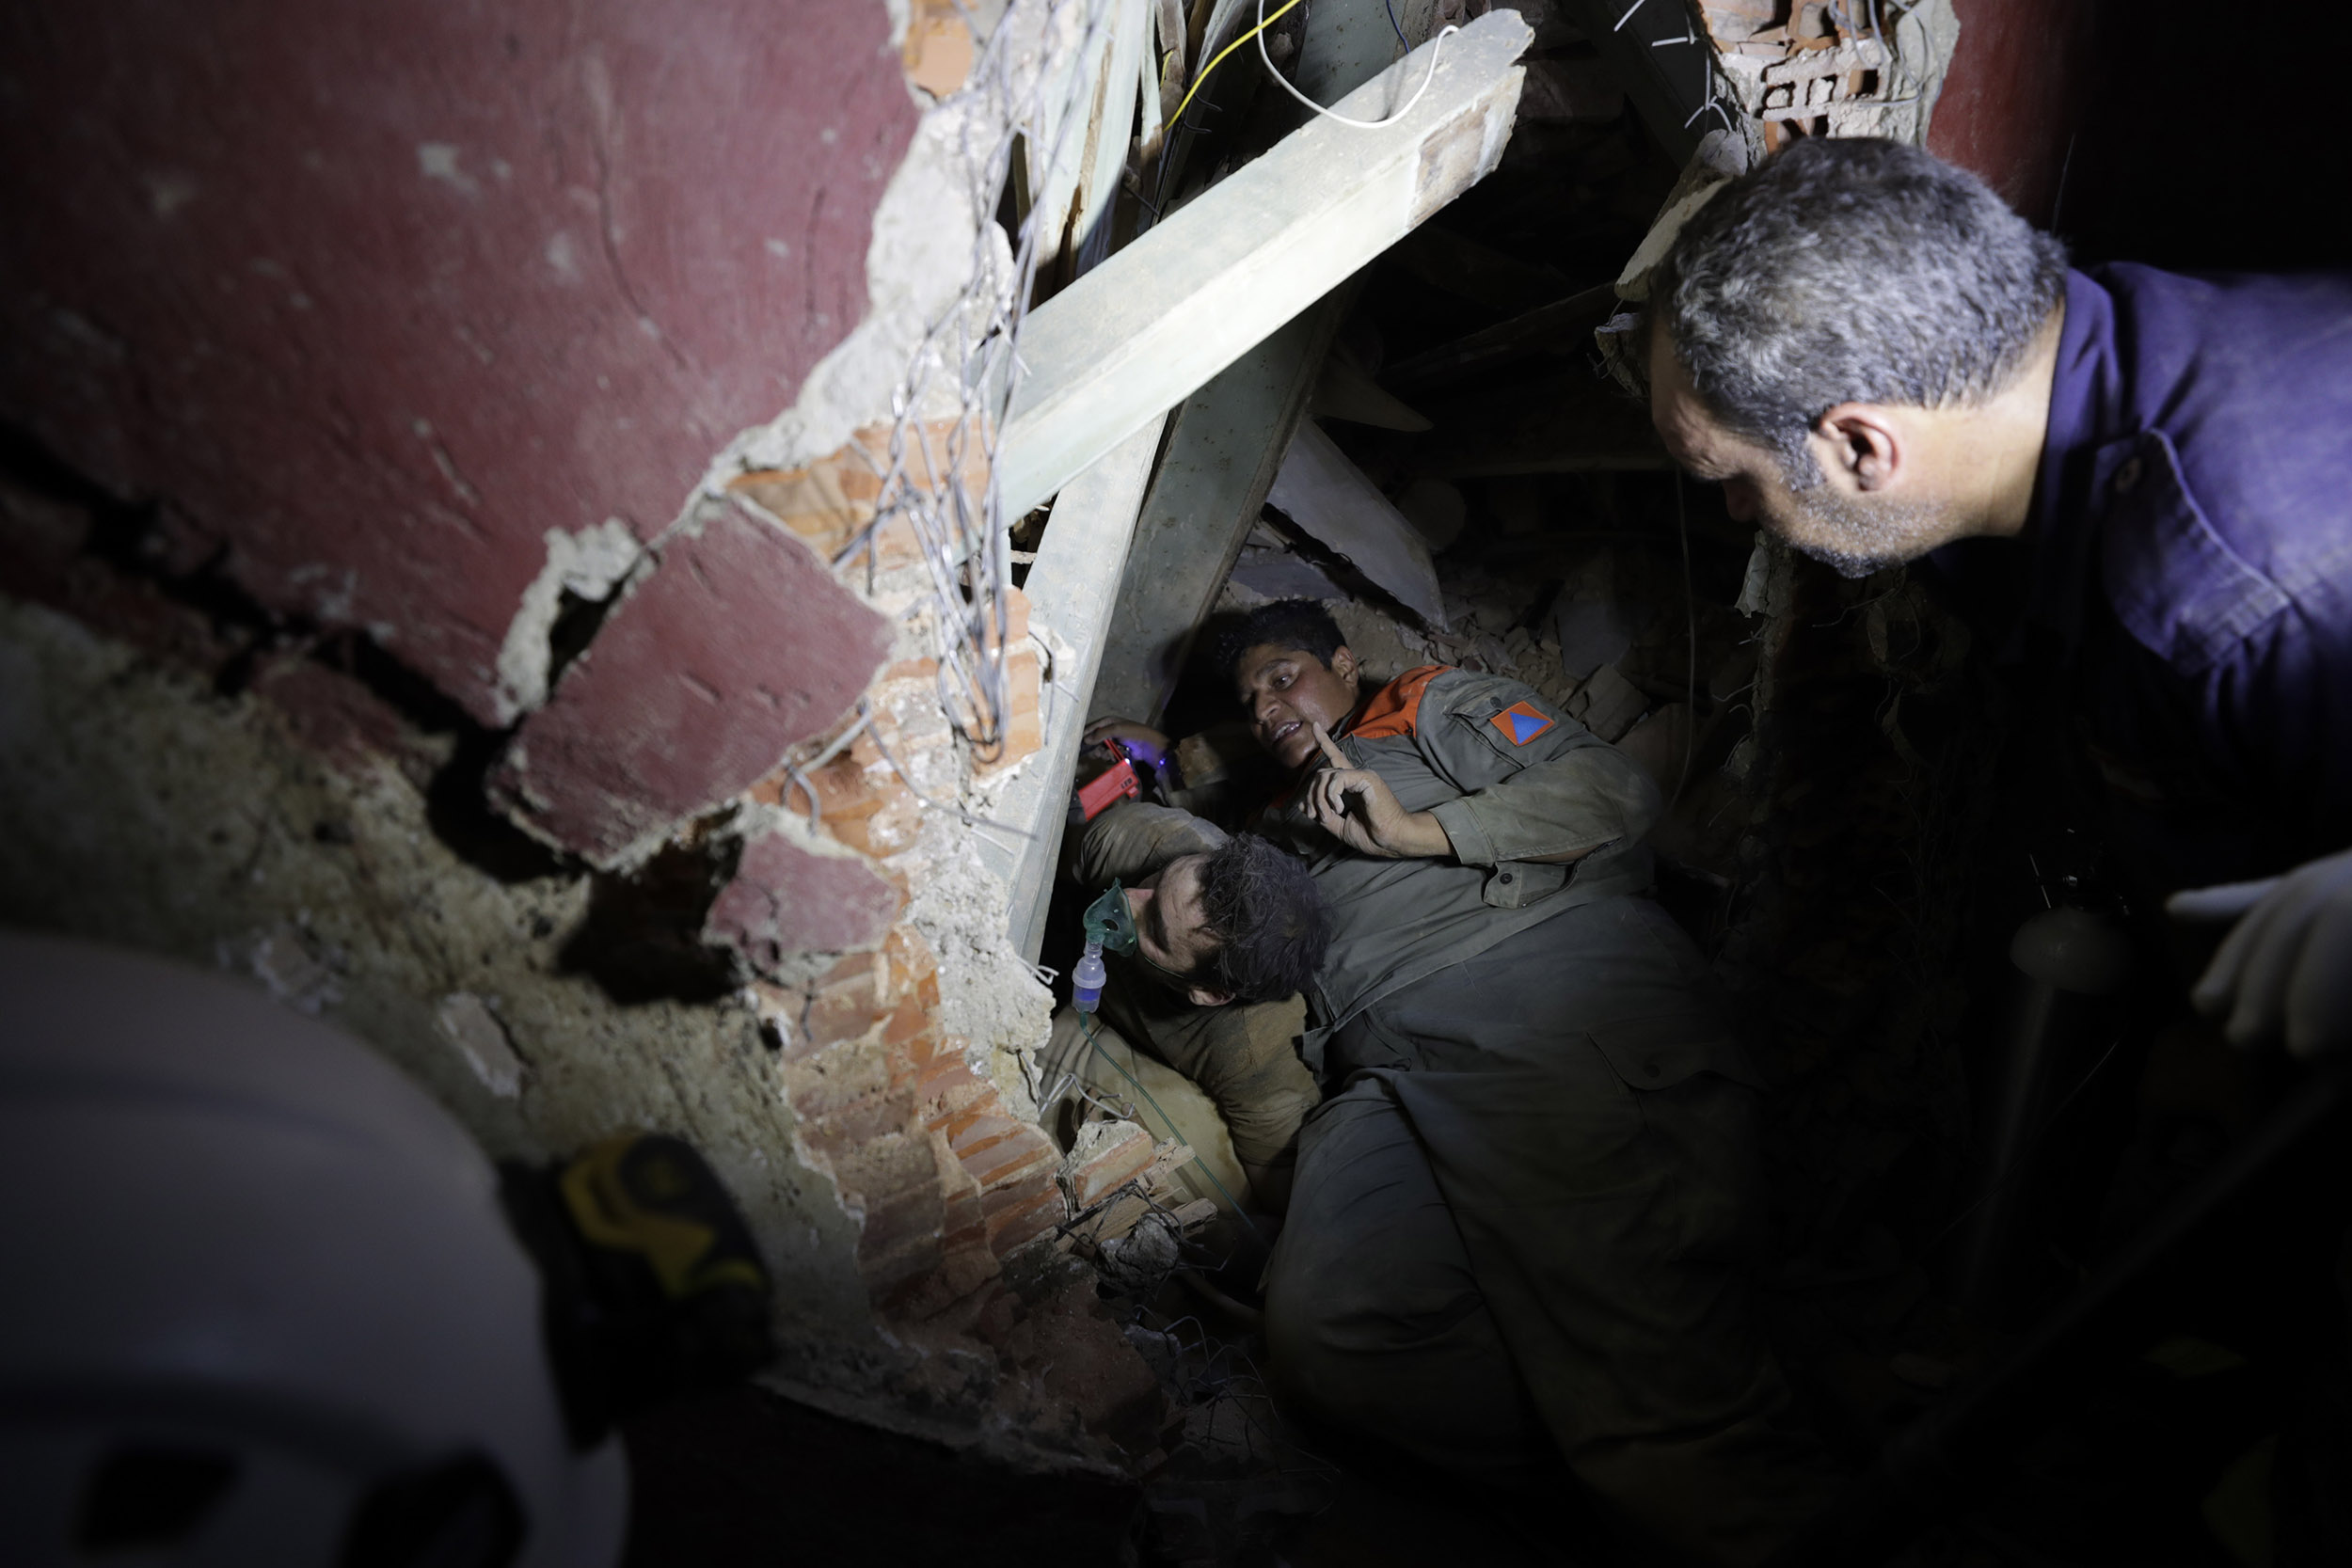 Lebanese soldiers search for survivors after a massive explosion in Beirut, Lebanon, on Wednesday, August 5.